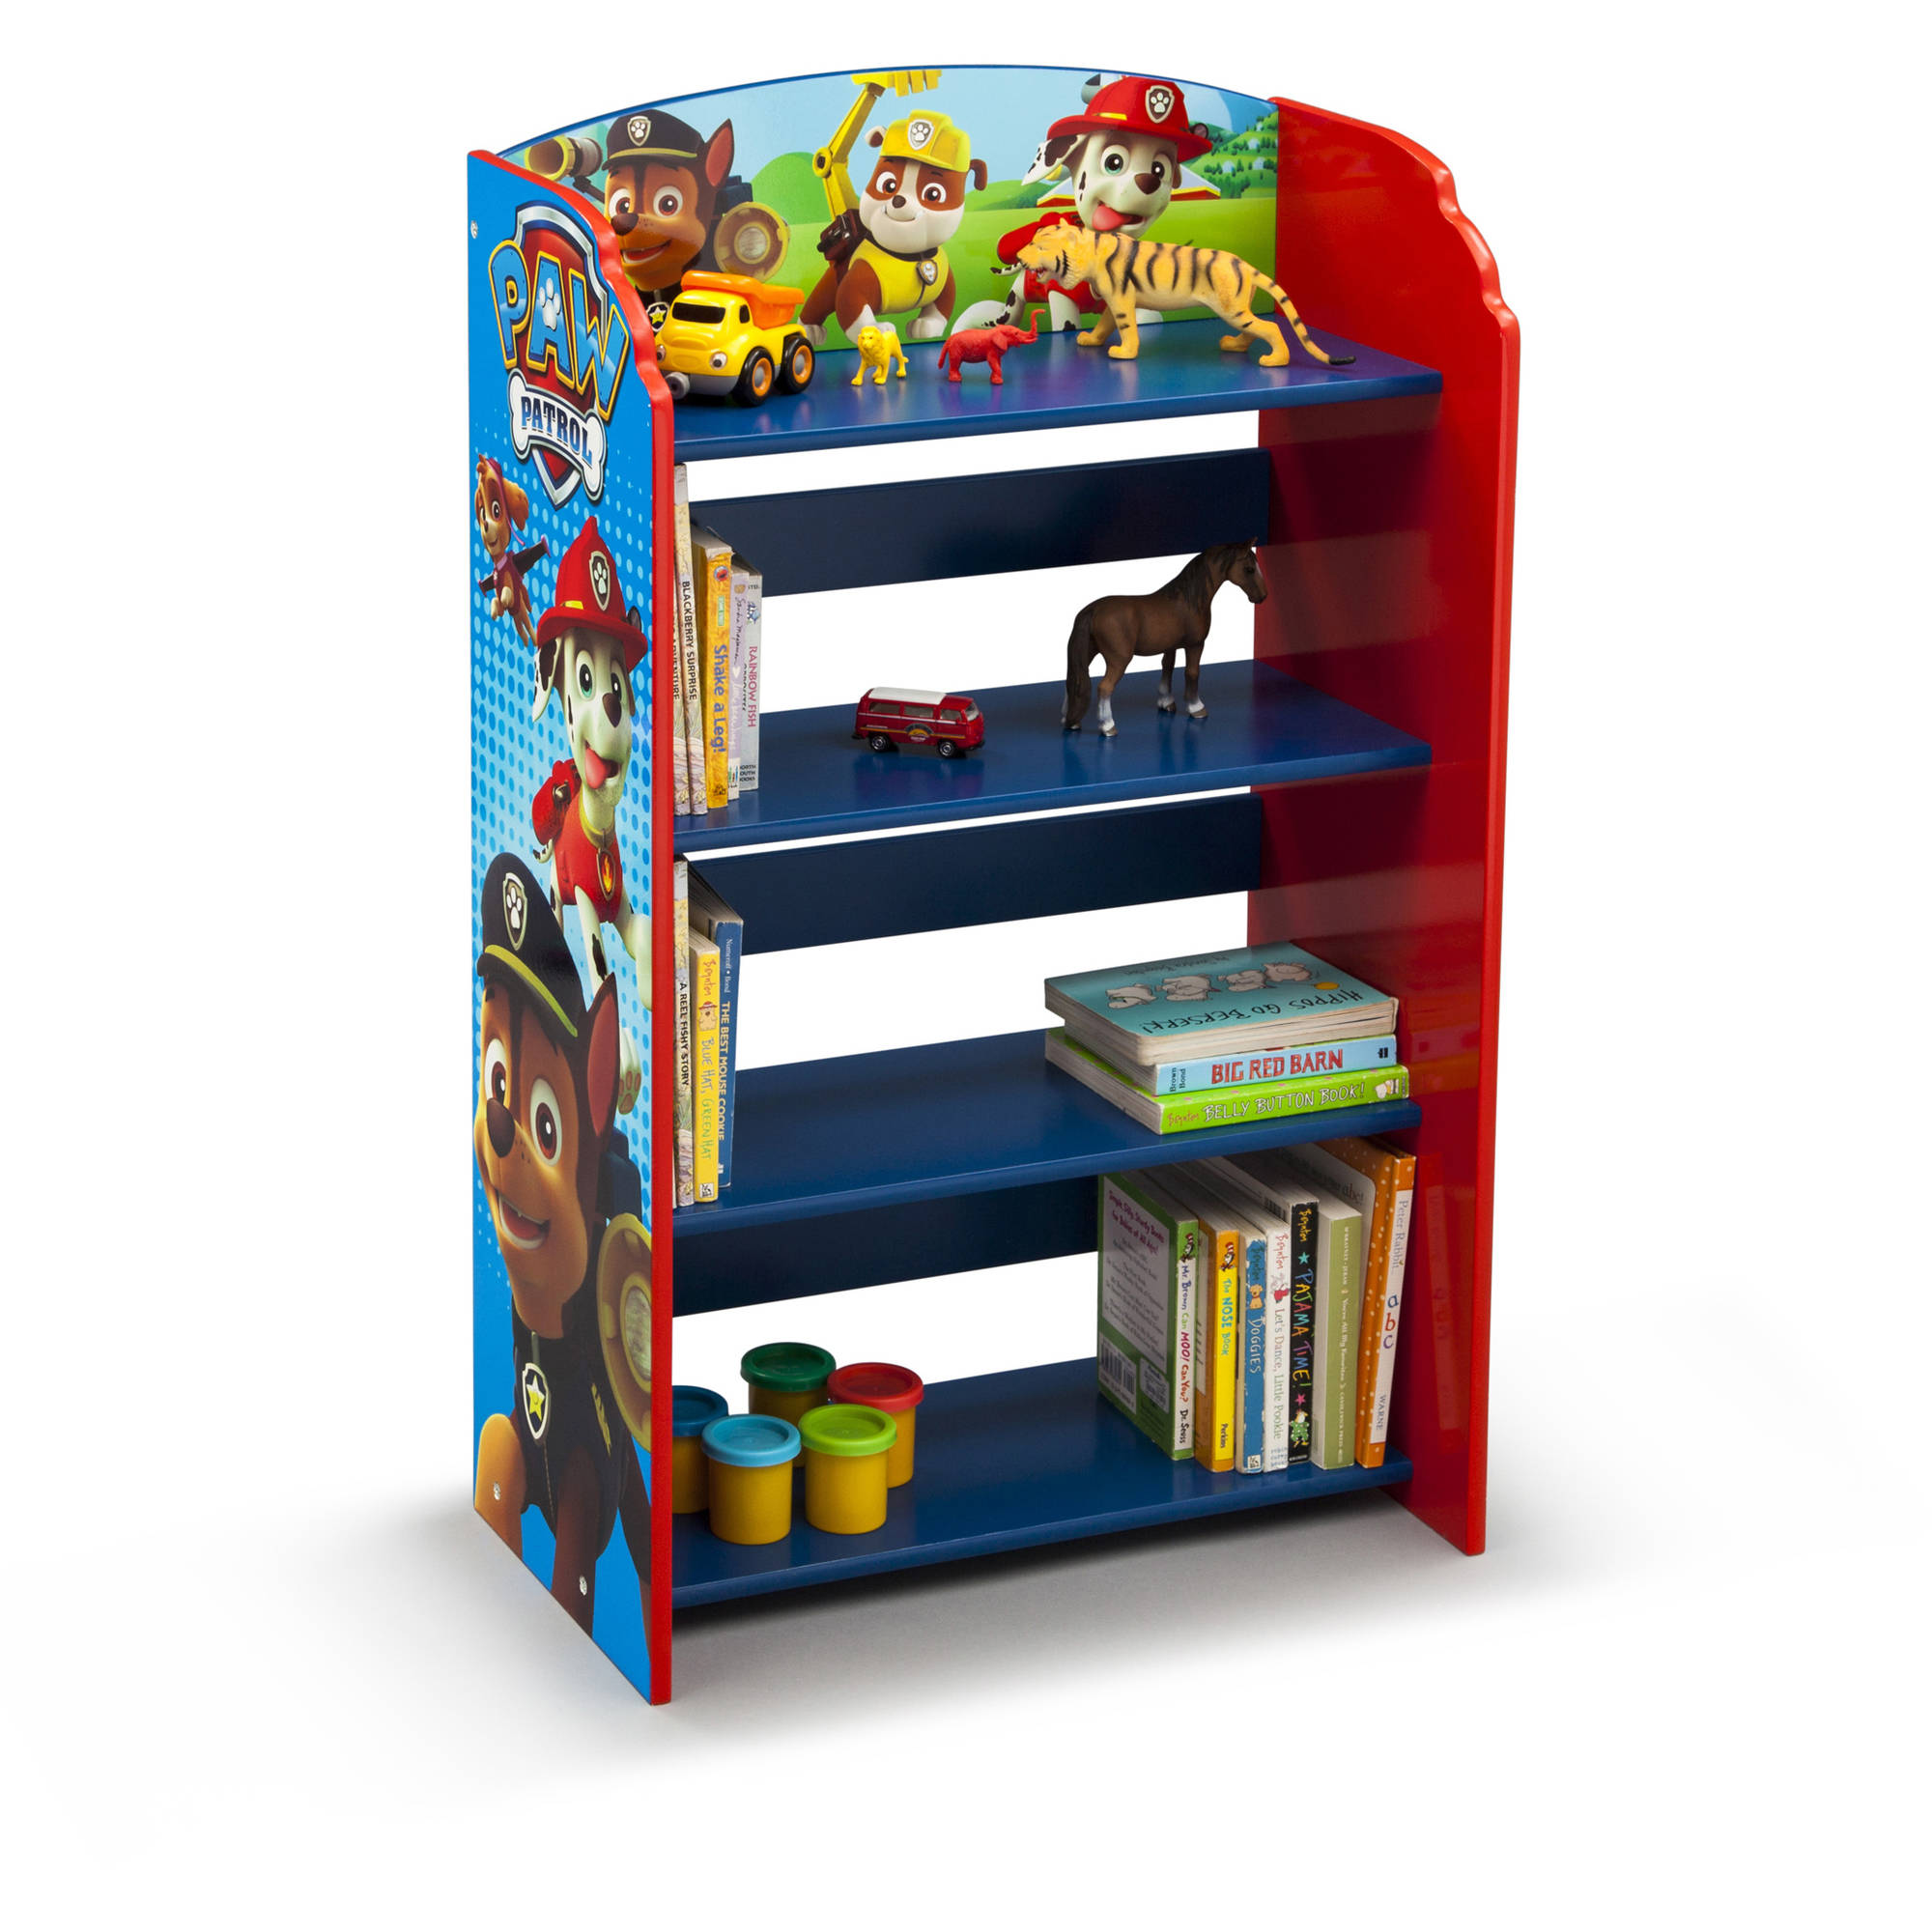 Paw Patrol Kids Toy Organizer Bin Children S Storage Box: Delta Children PAW Patrol Bookshelf Kids Storage Toy